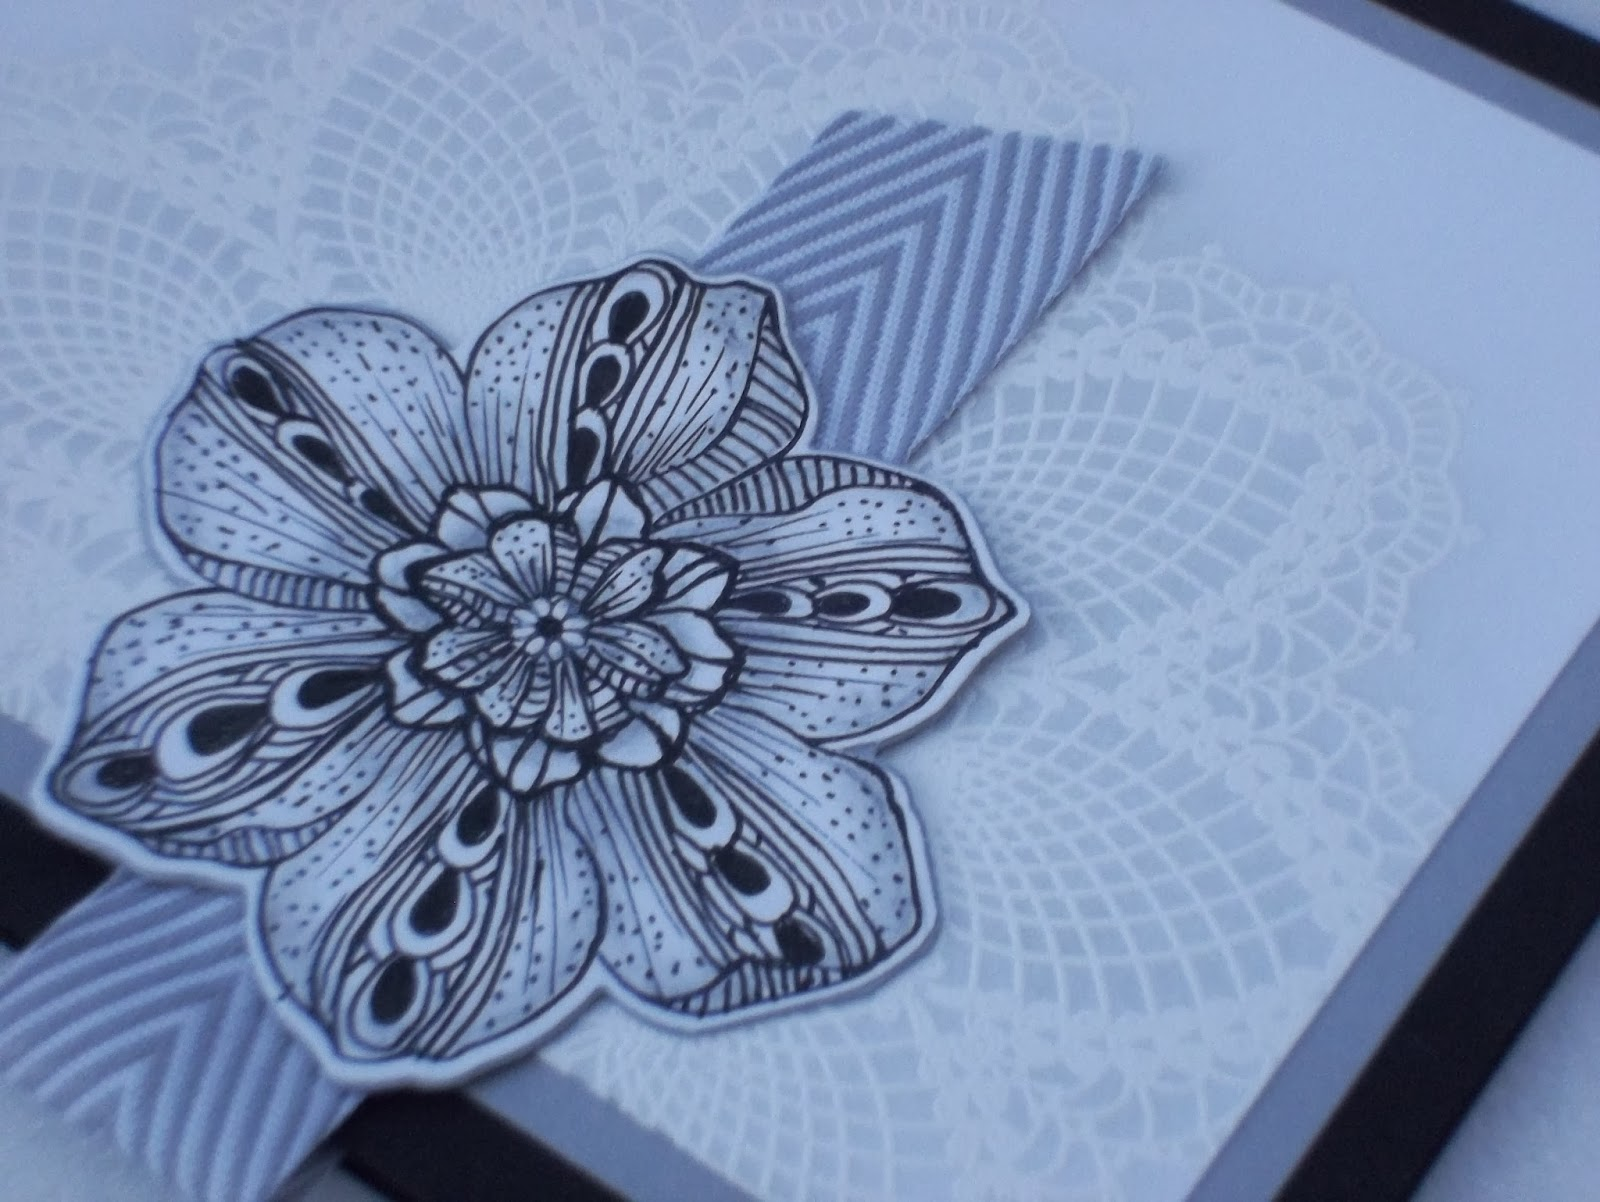 Secret Garden flower Zentangle style on Hello Doily